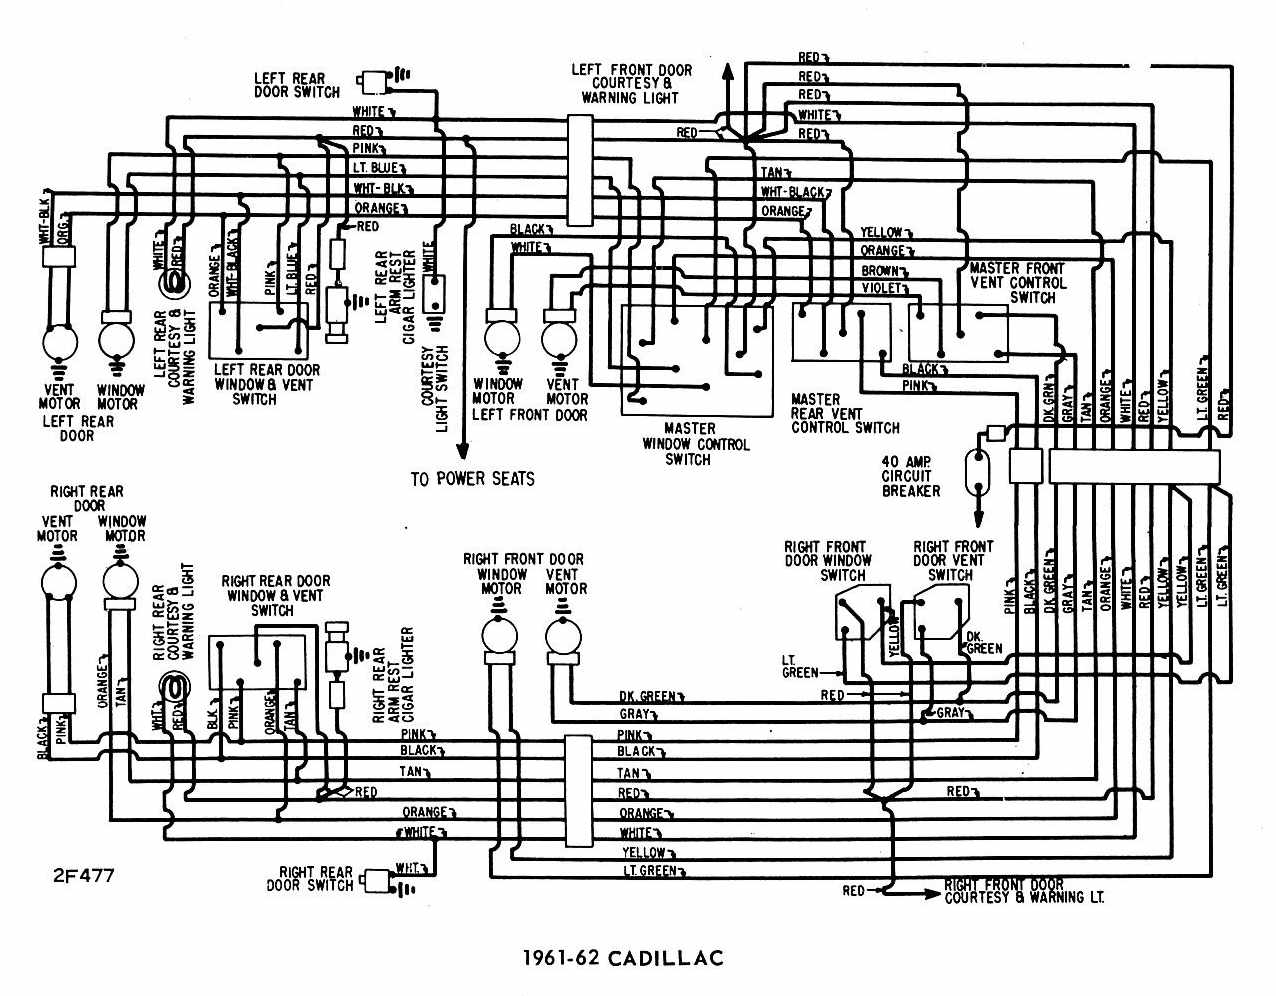 1968 Gm Radio Wiring Diagram Cadillac Car Manuals Diagrams Pdf Fault Codes Download